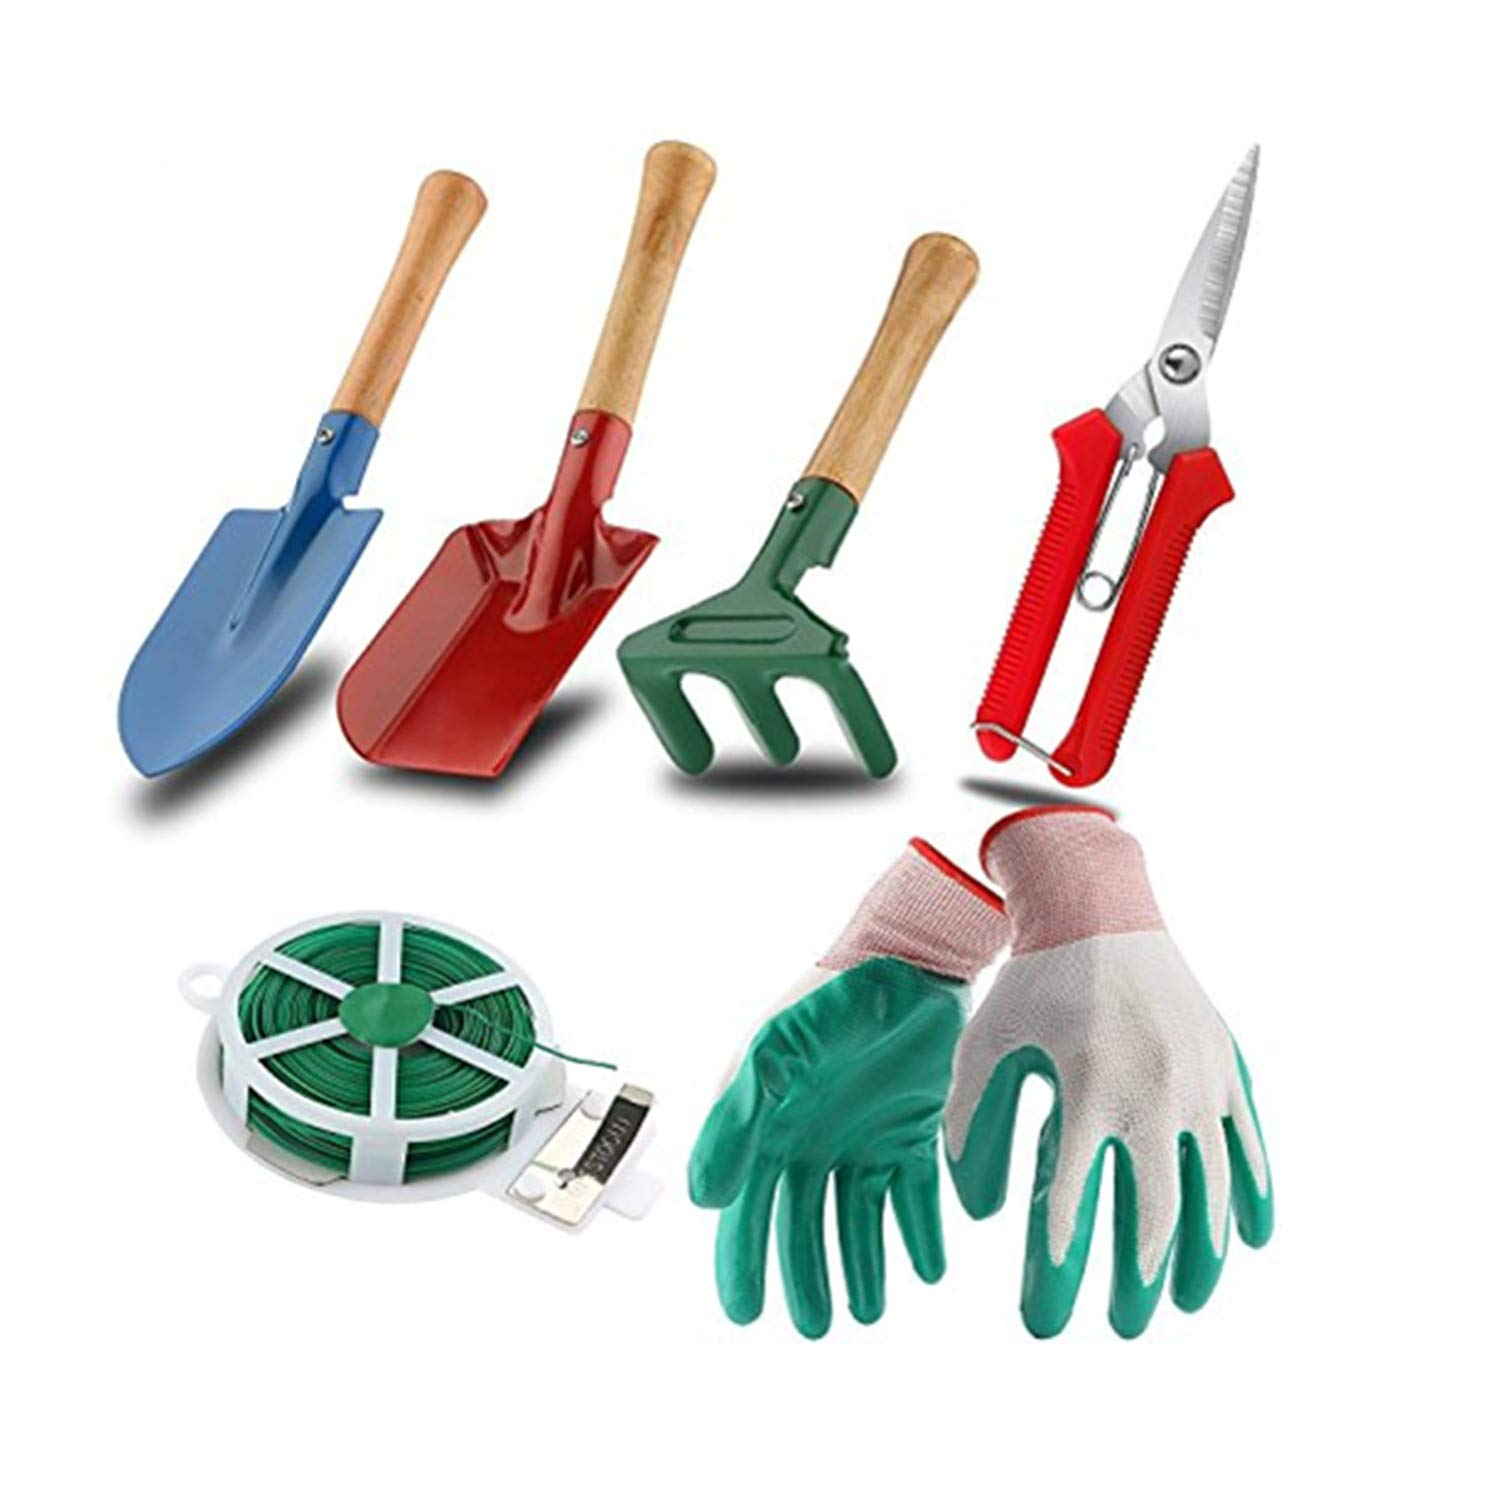 WINIT 7-Piece Garden Tool Set Include Triangle Shovel, Square Shovel, Hand Rake, Gloves, Plant Twist Tie and Pruner, Portable Bend-proof Gardening Tools (No Mat) by WINIT